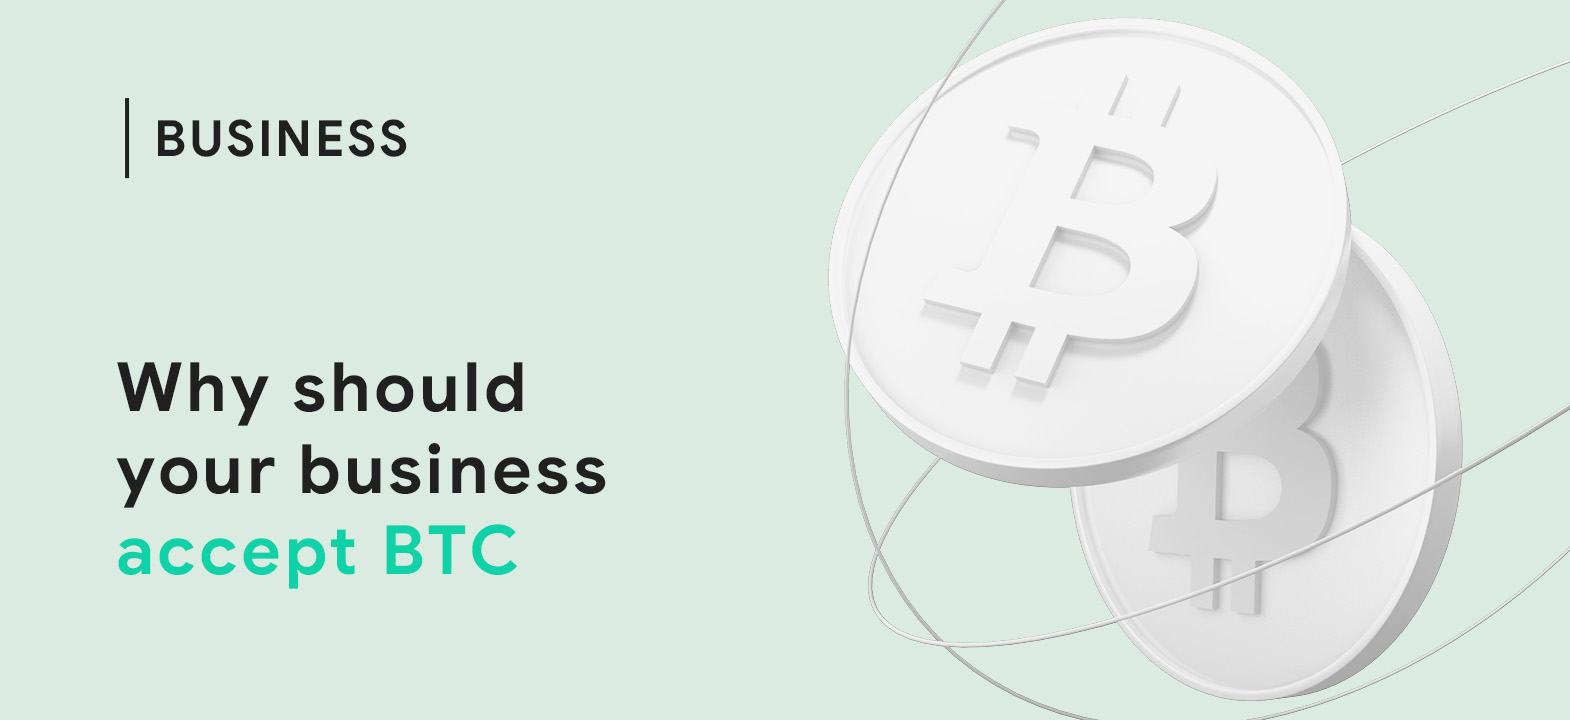 Why should your business accept BTC